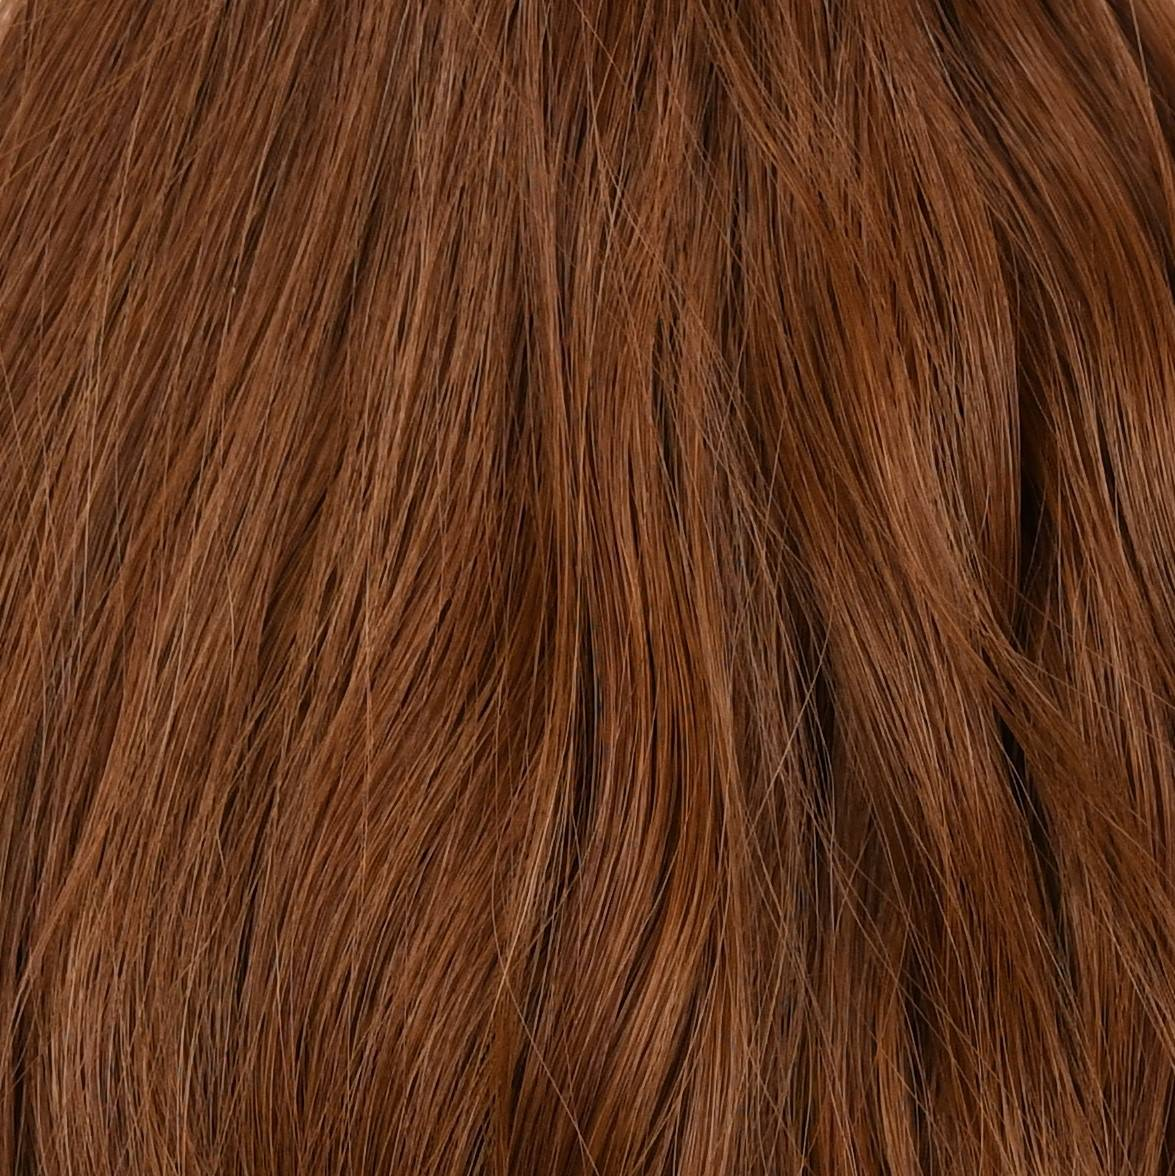 blend of red hair extensions color sample in hair color chart